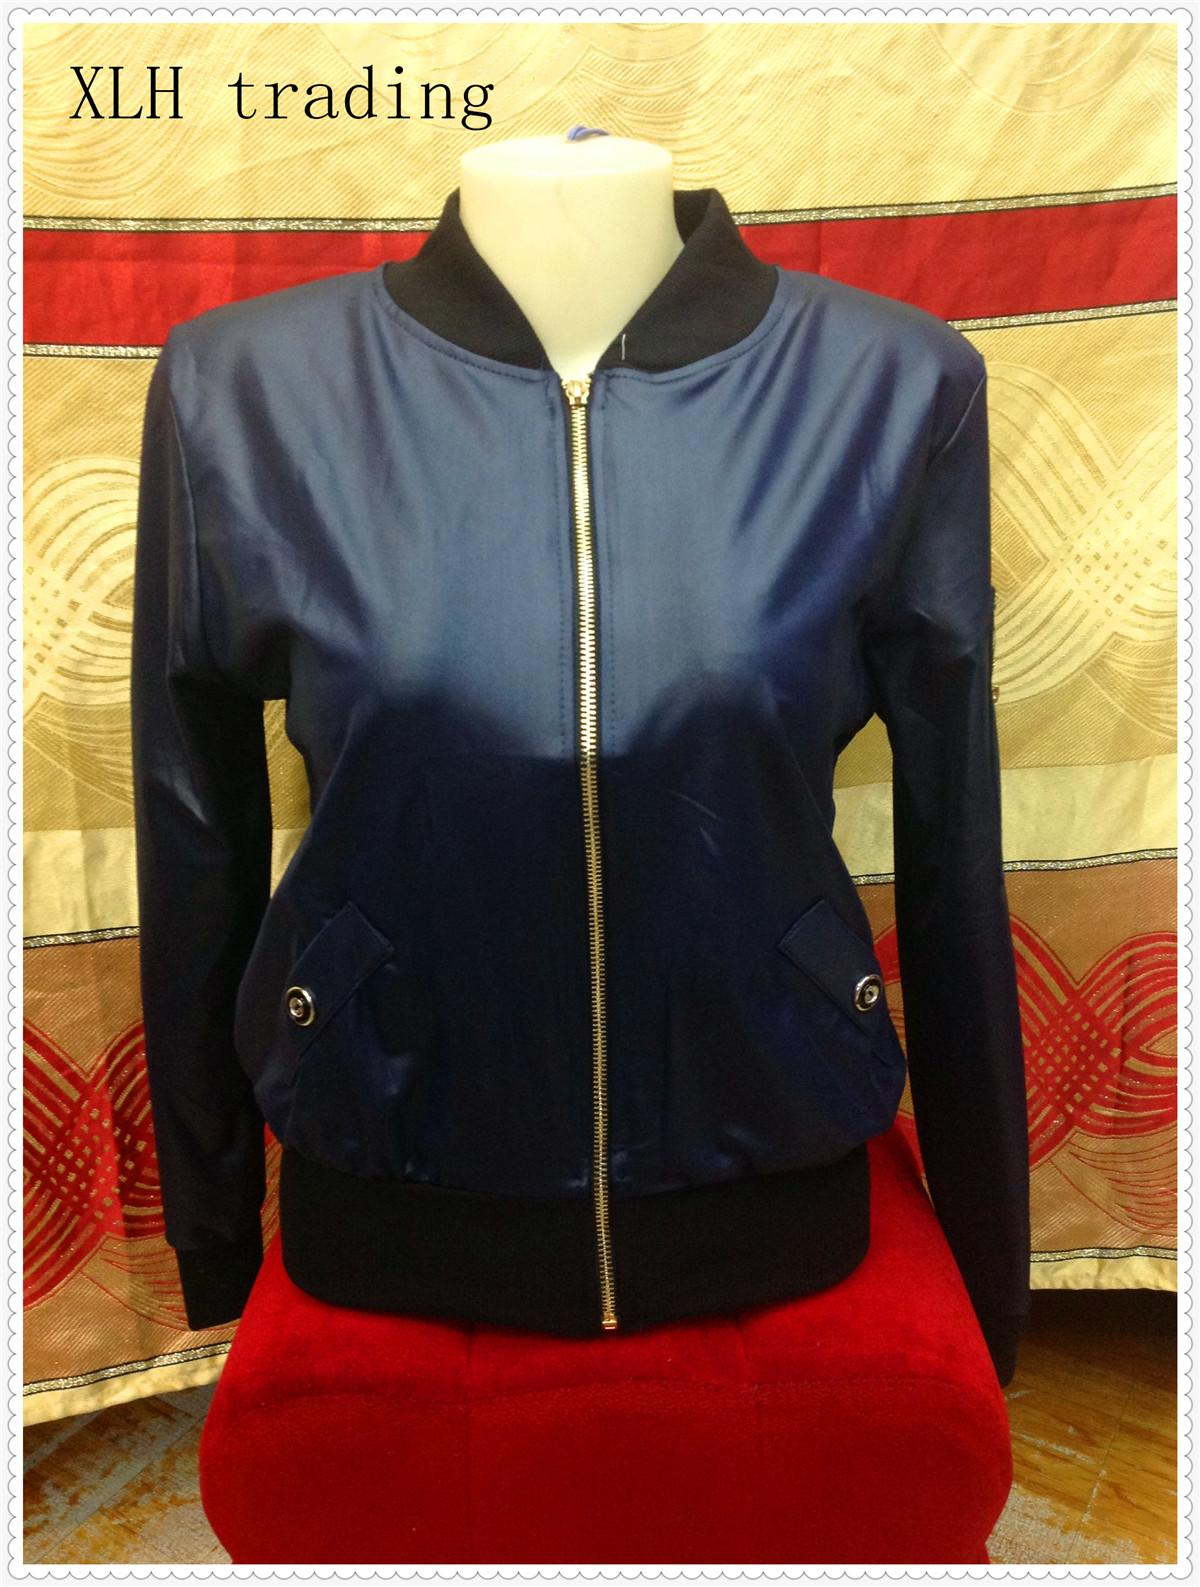 df6ea2fb9 Girls Jackets for sale - Coats for Girls Online Deals & Prices in  Philippines | Lazada.com.ph